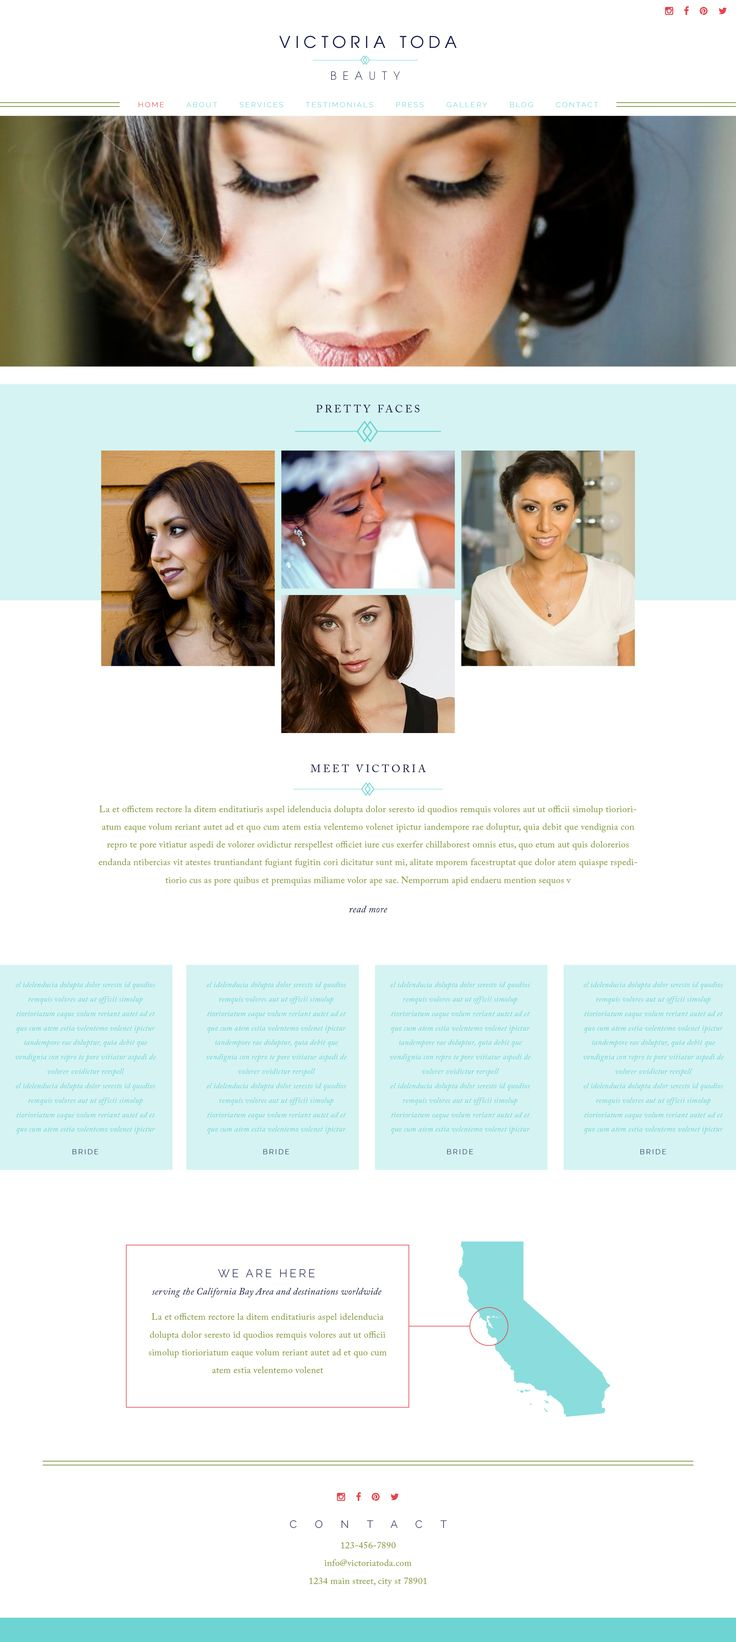 Makeup artist logo and website: Take a look at our fresh face and clean website…